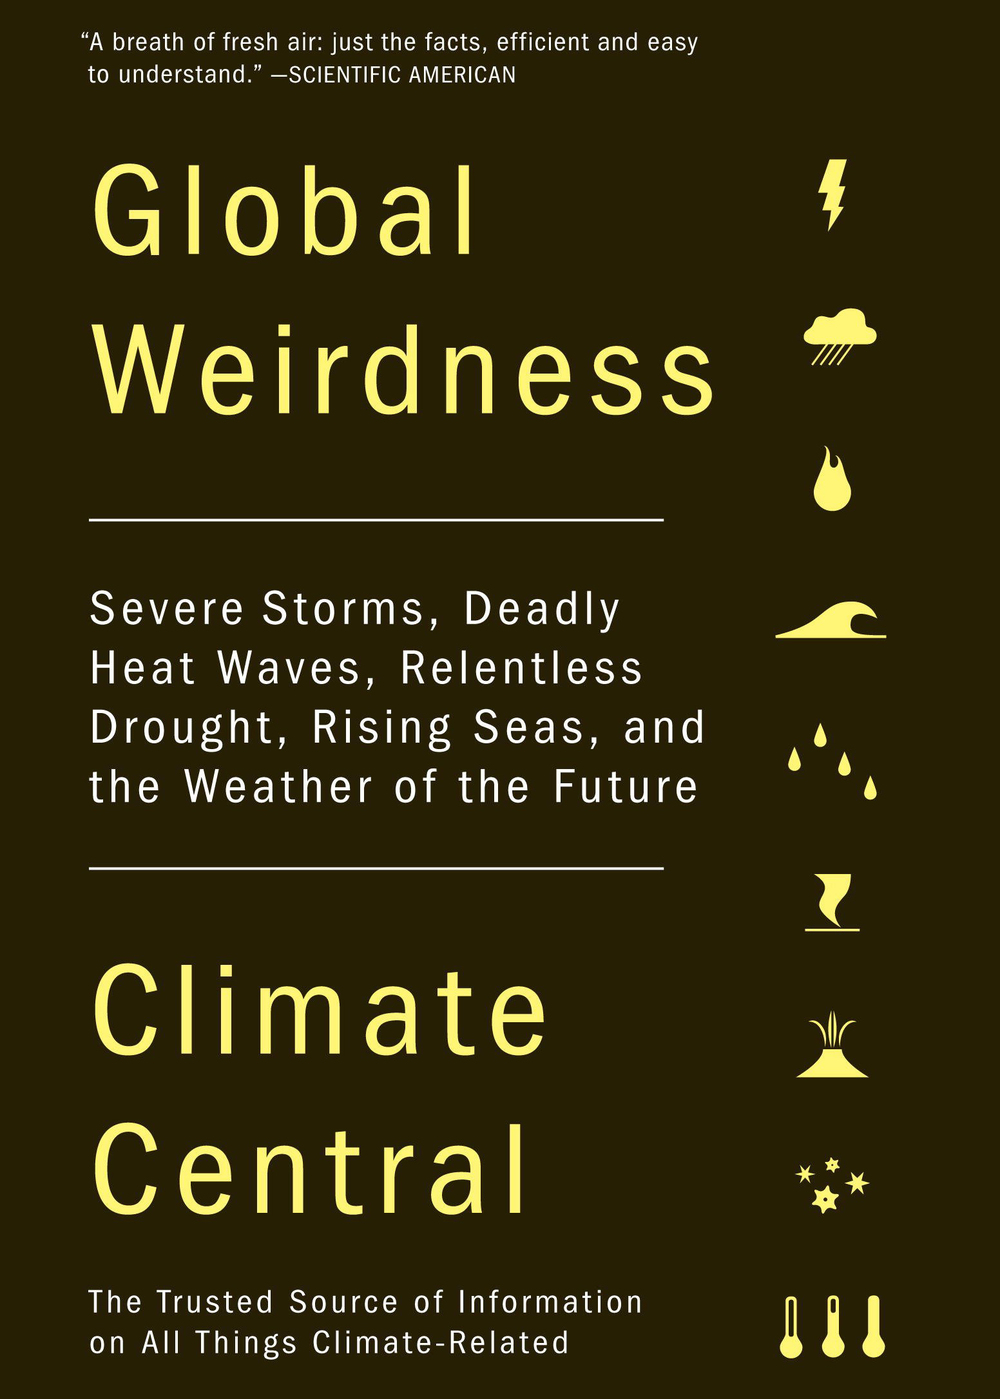 Climate Central - Global Weirdness.jpg